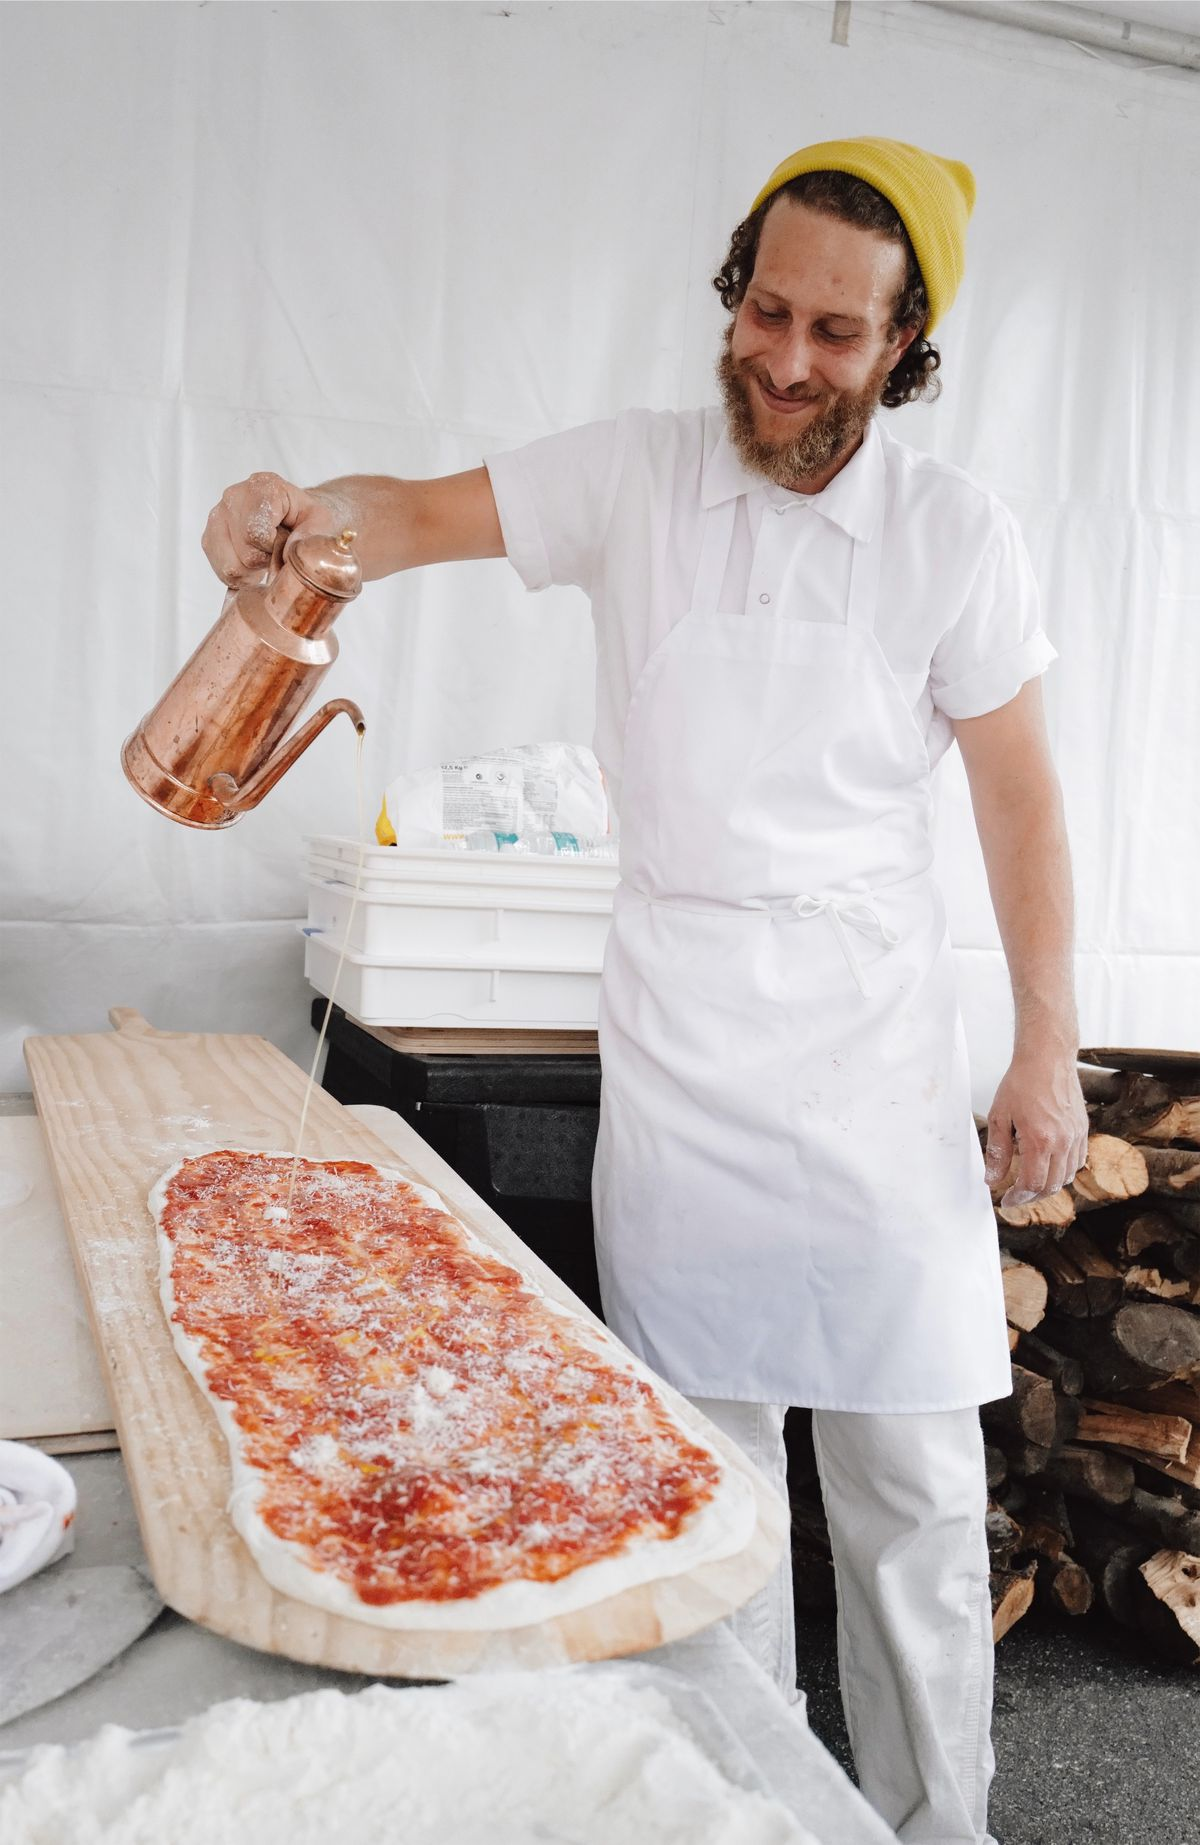 Hans Fama makes pizza for Forno Fama in a tent.